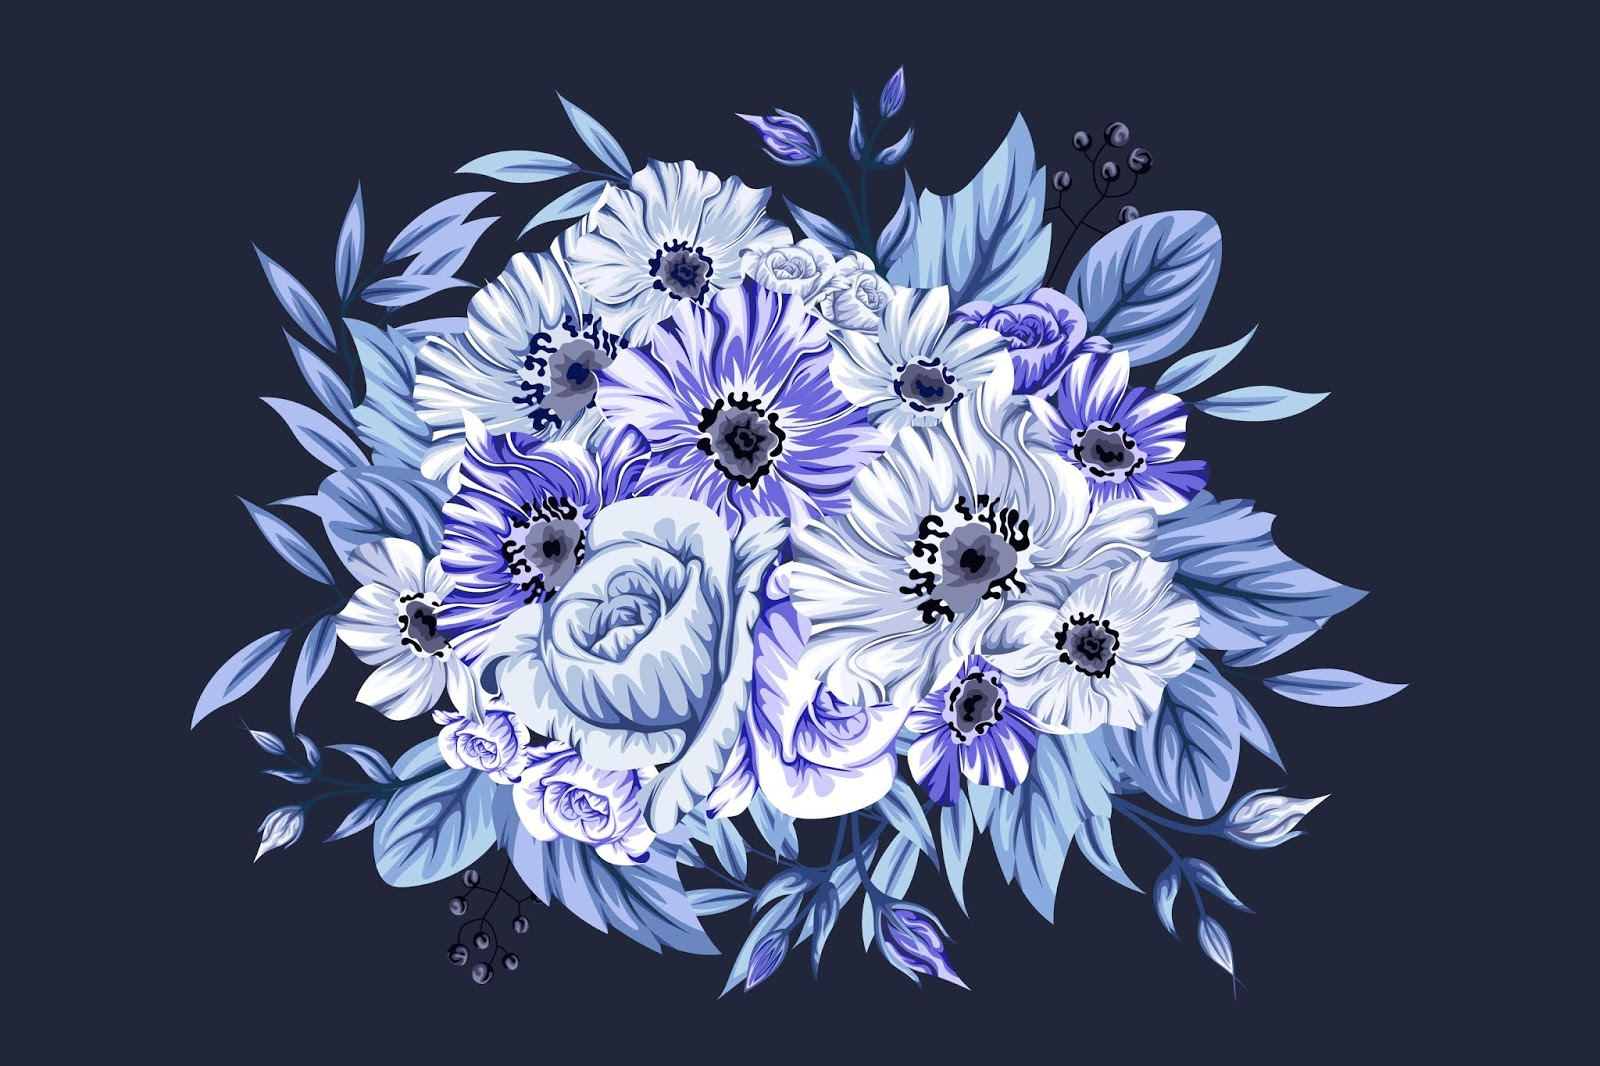 Beautiful Icy Blue Bouquet Flowers Free Download Vector CDR, AI, EPS and PNG Formats